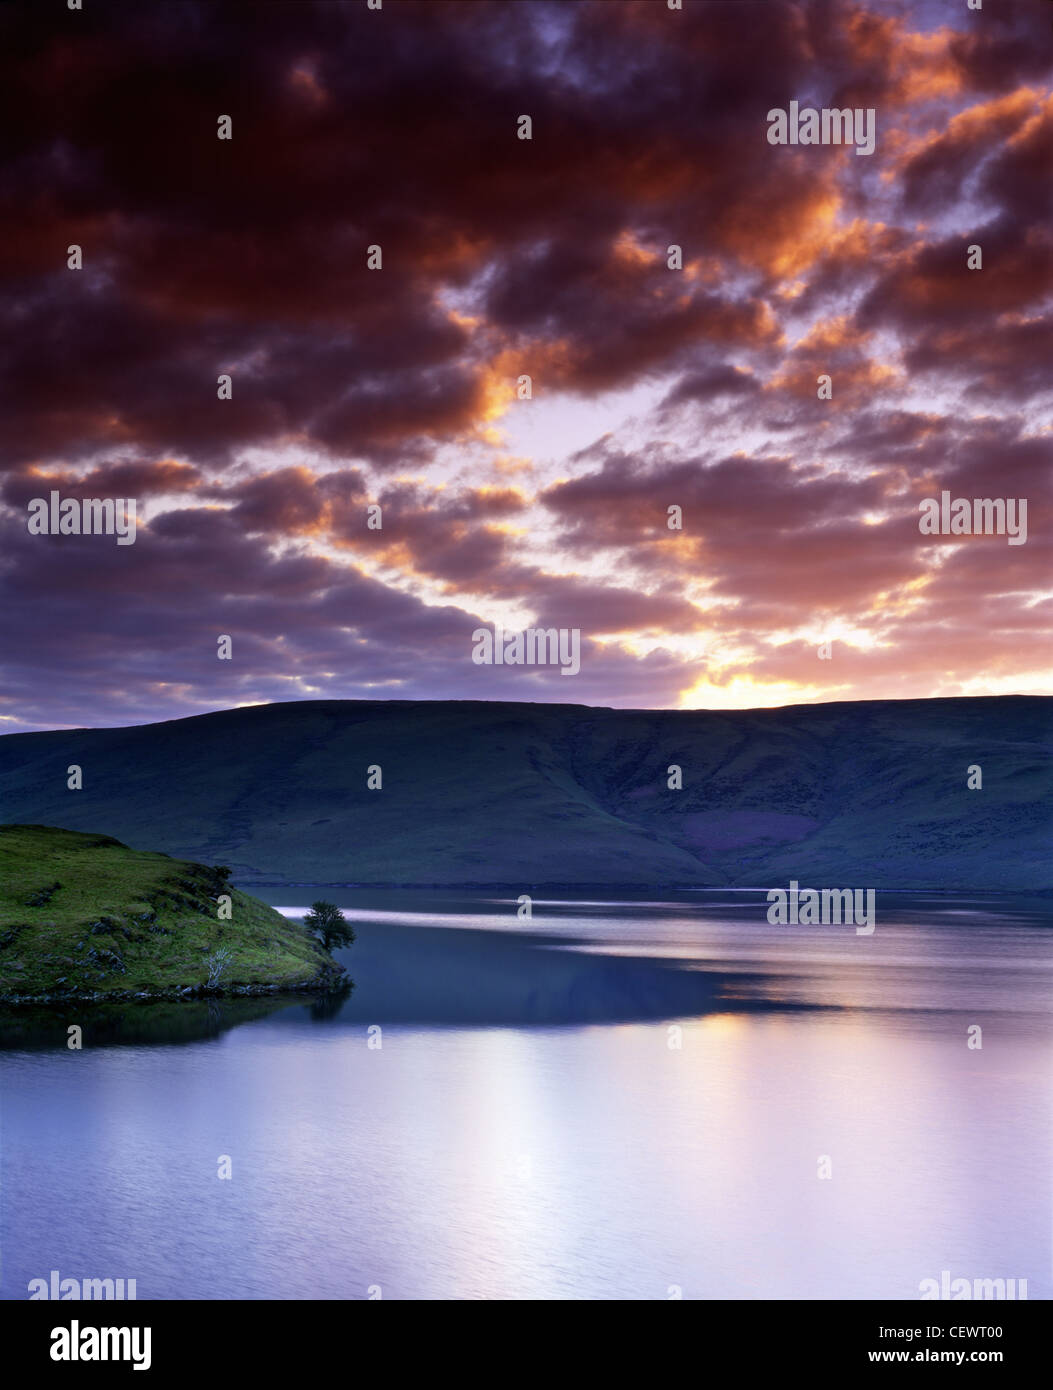 Heavy clouds part as dawn breaks over Penygarreg Reservoir in the Elan Valley. - Stock Image